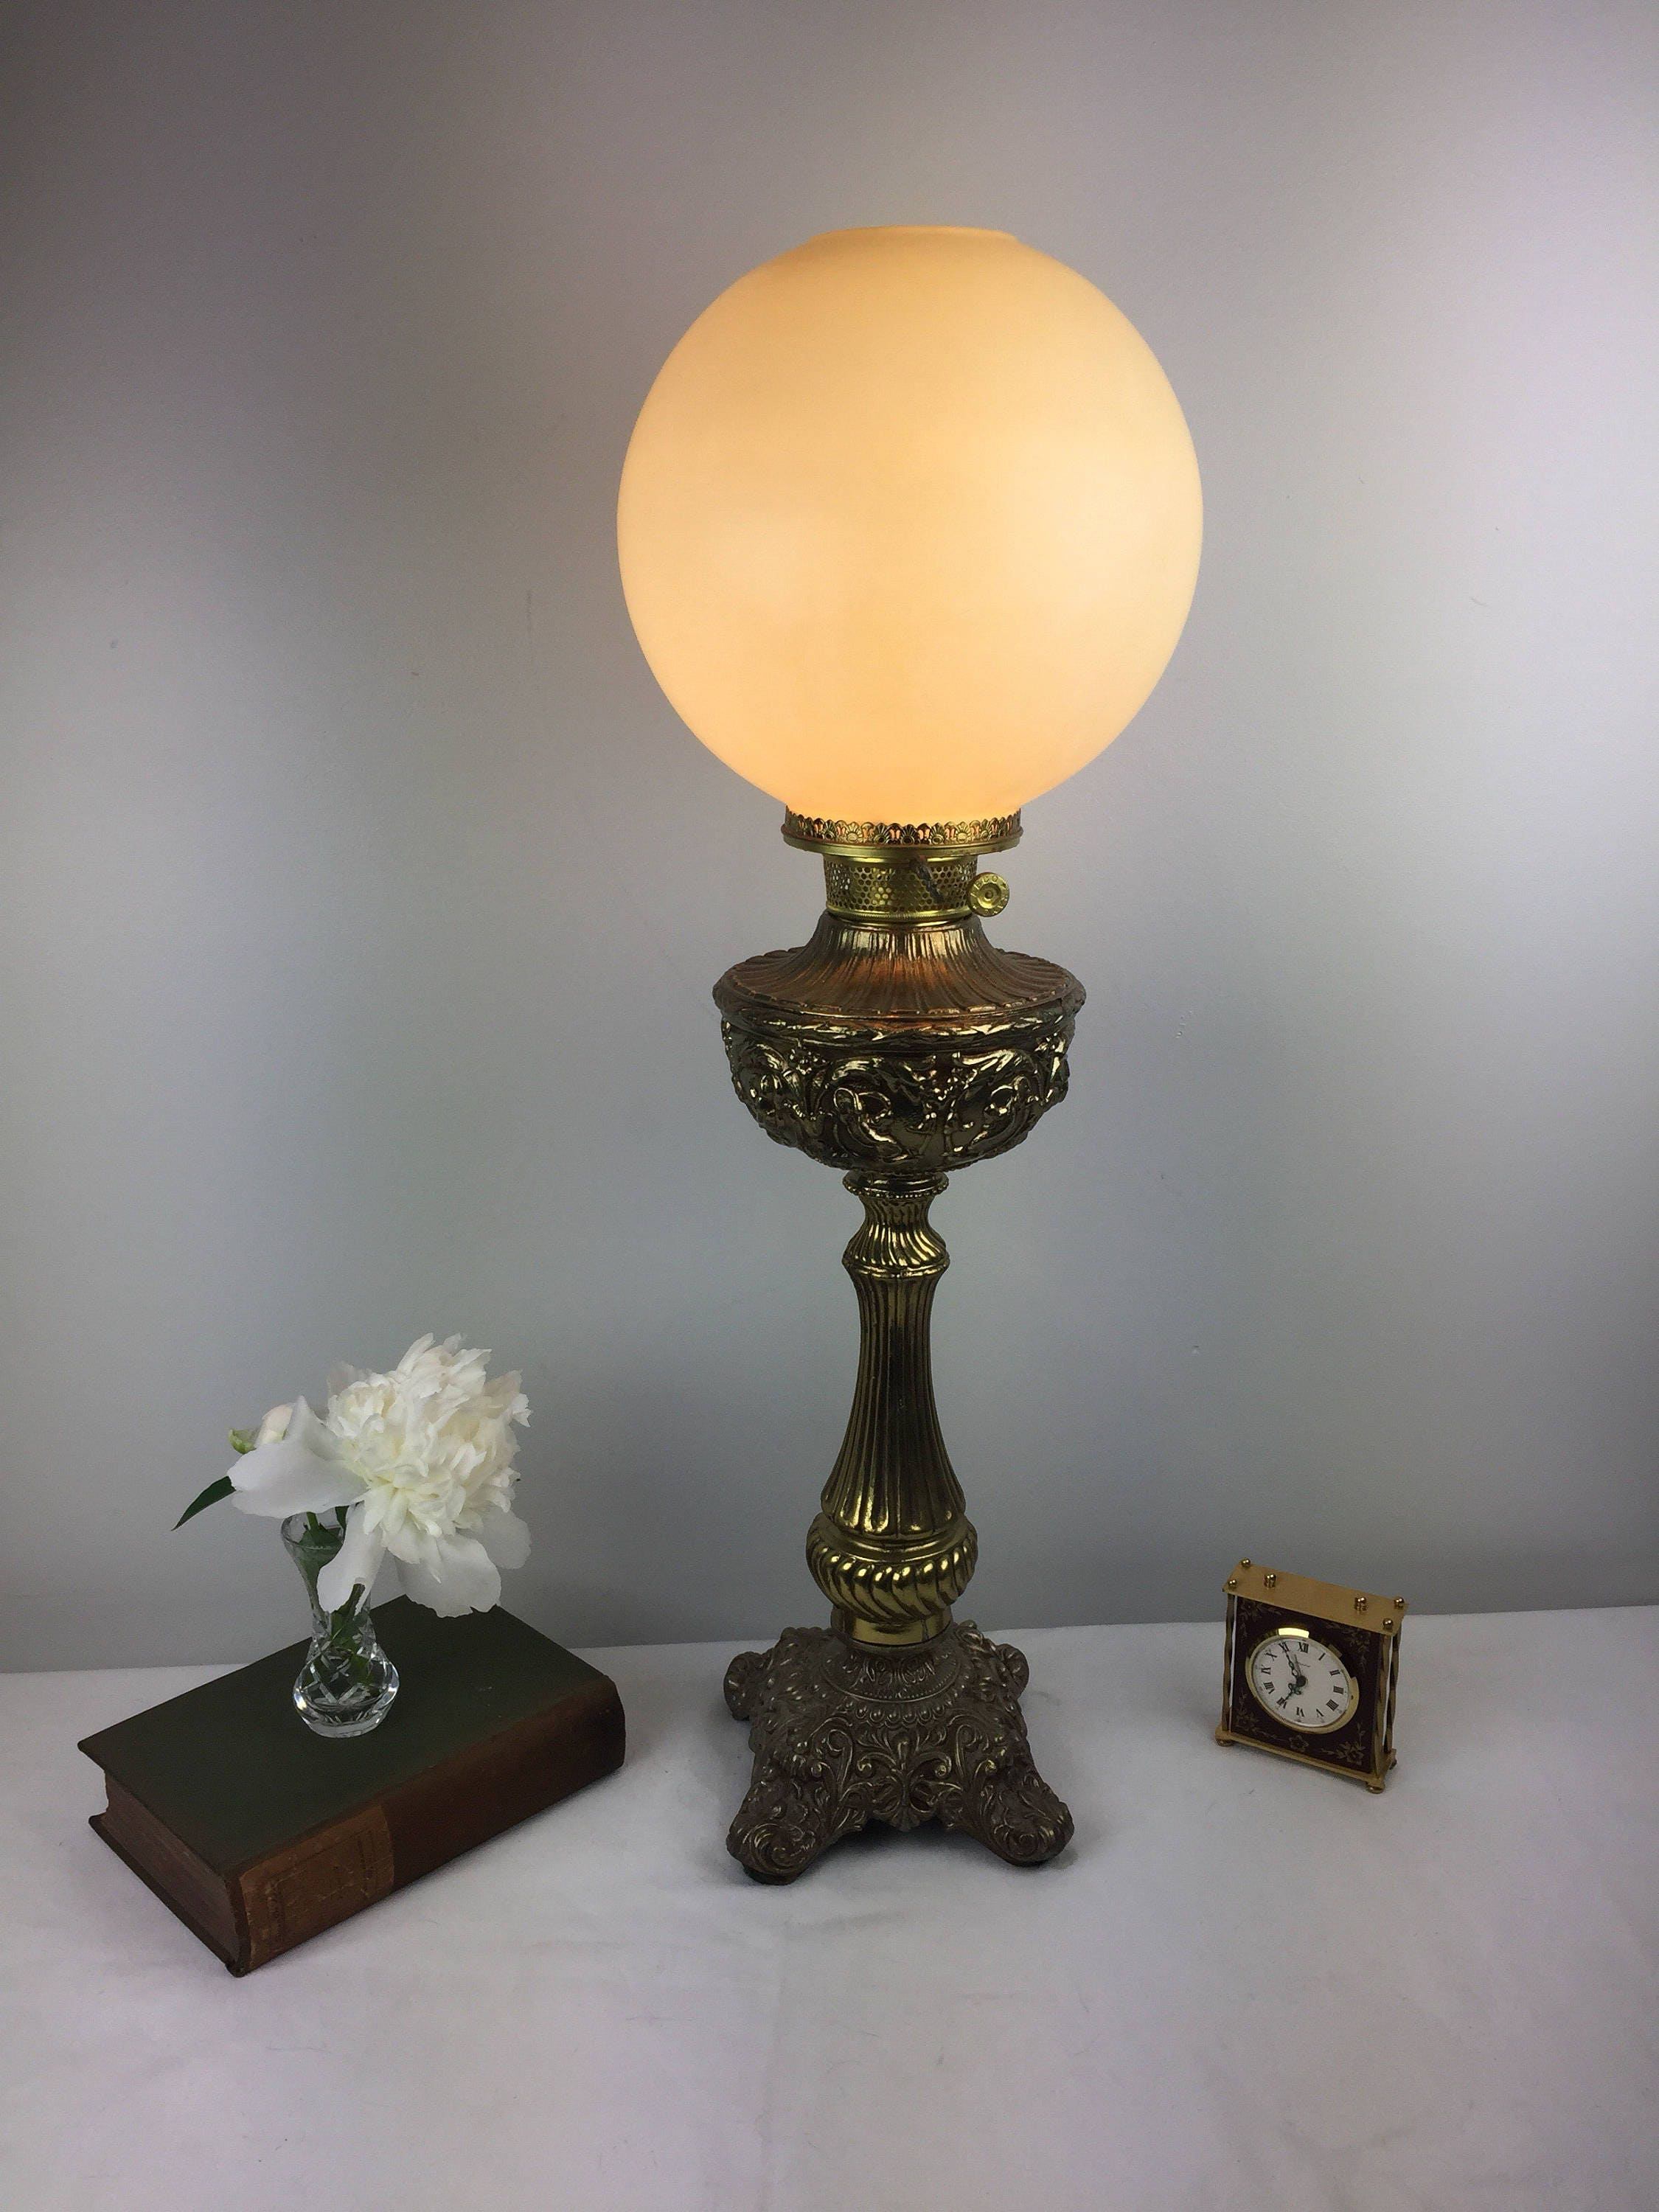 embossed parlor banquet electrified lamp cream glass globe. Black Bedroom Furniture Sets. Home Design Ideas